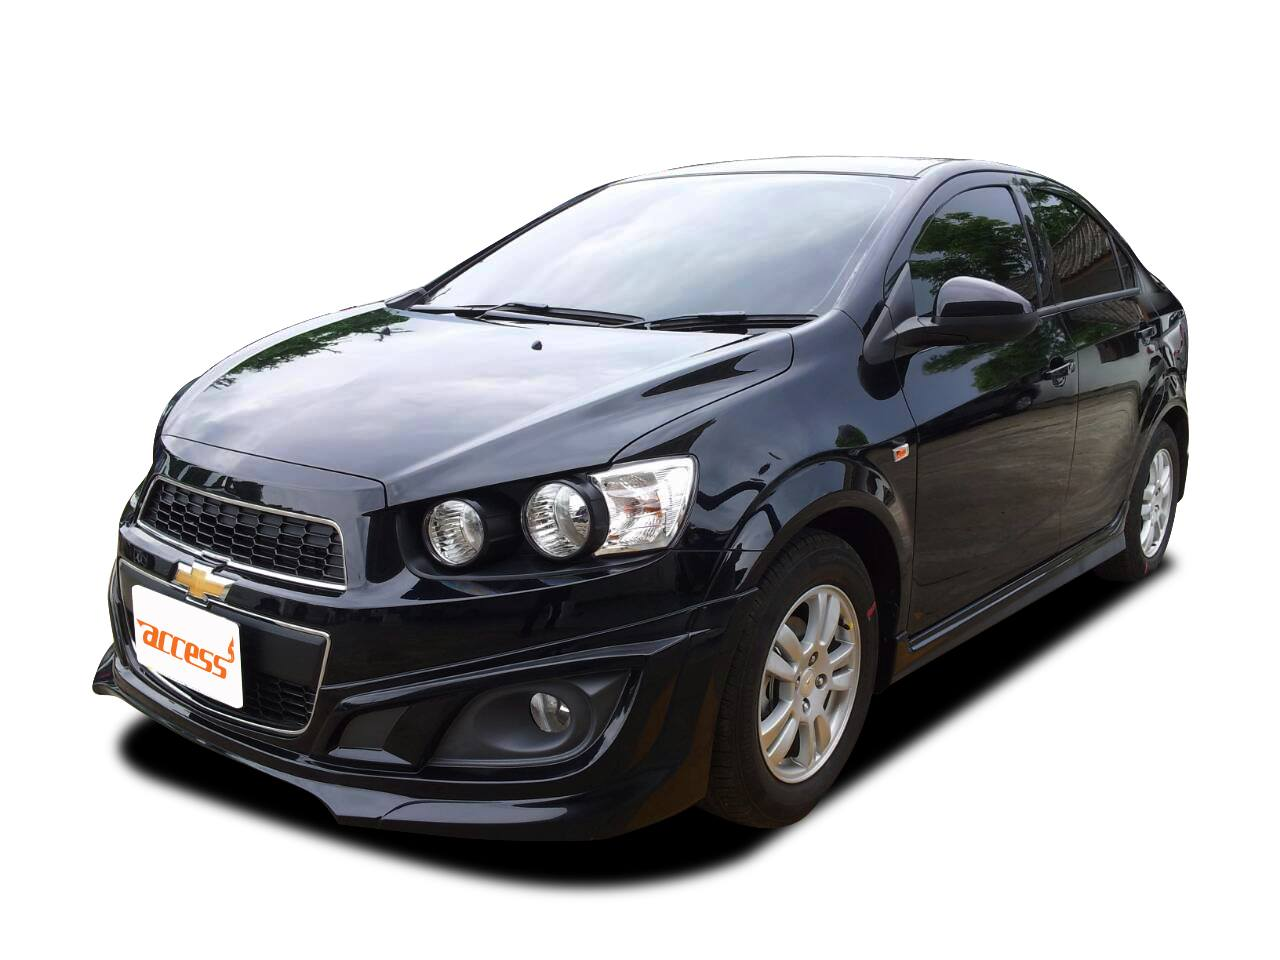 Chevrolet Sonic sedan and hatchback 2014 bodykits by Access - cross Toyota cross : Inspired by LnwShop.com